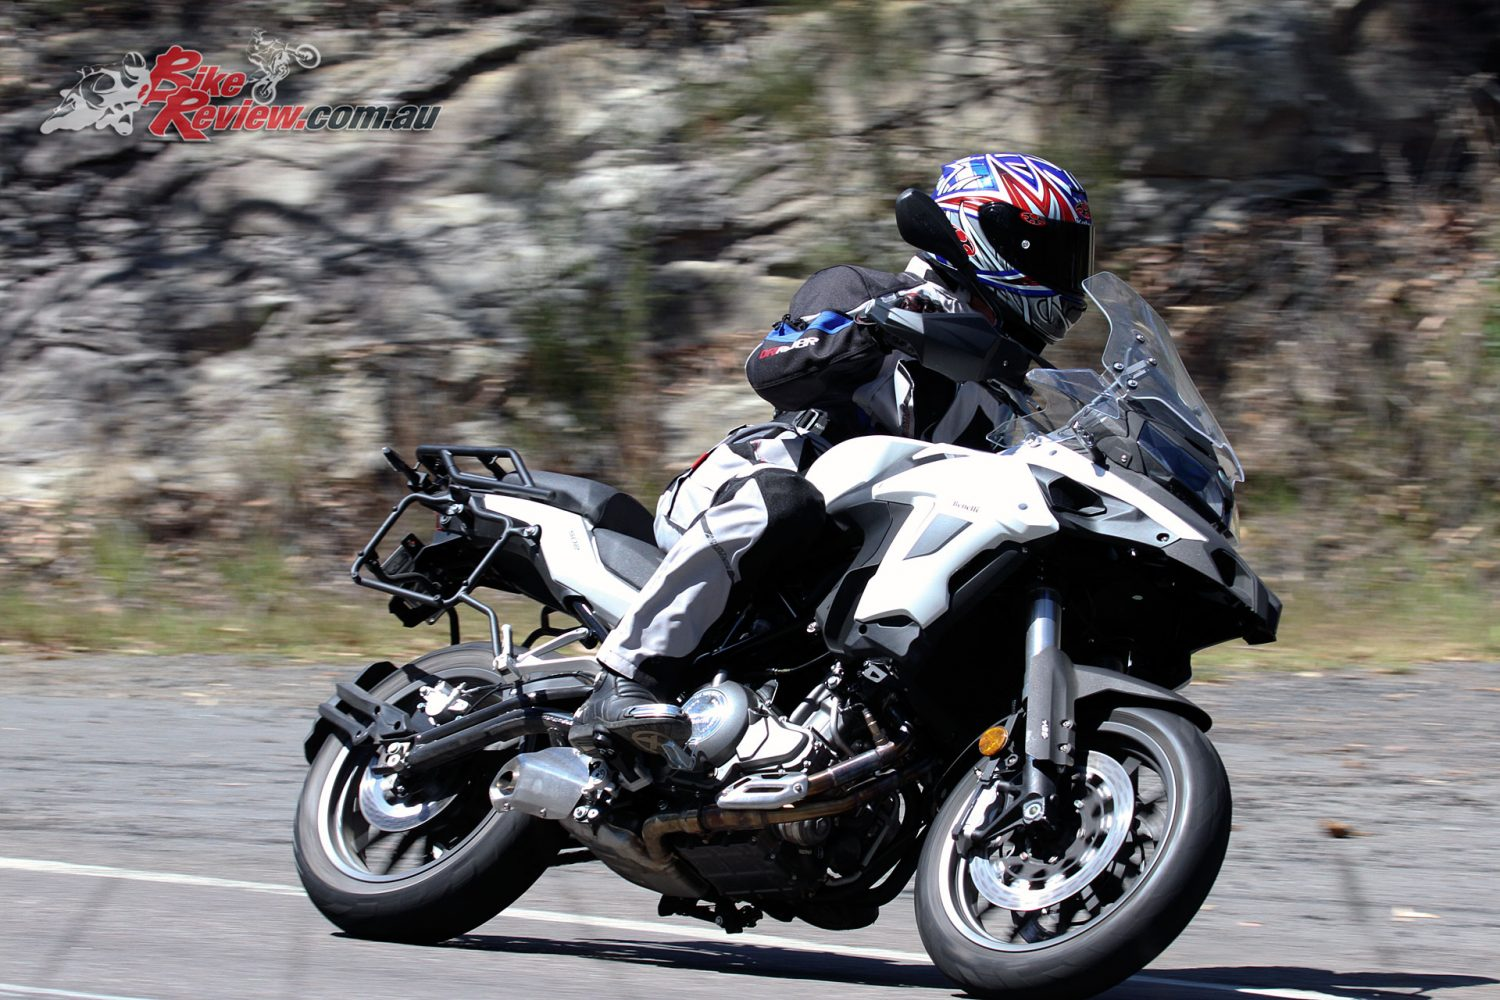 Benelli TRK 502 Reviewed